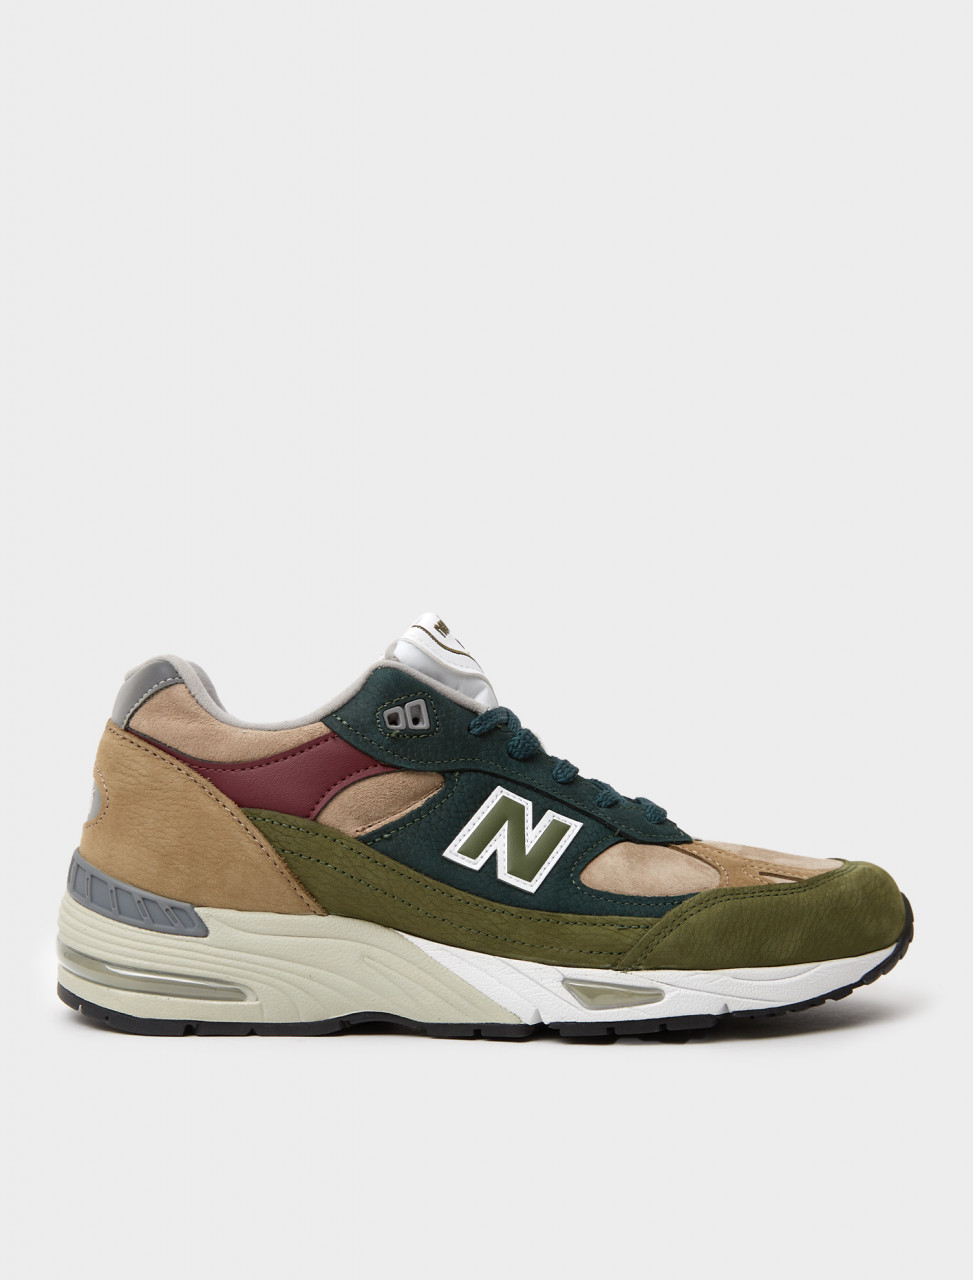 821251-60-11 NEW BALANCE 991 GREEN BROWN OLIVE